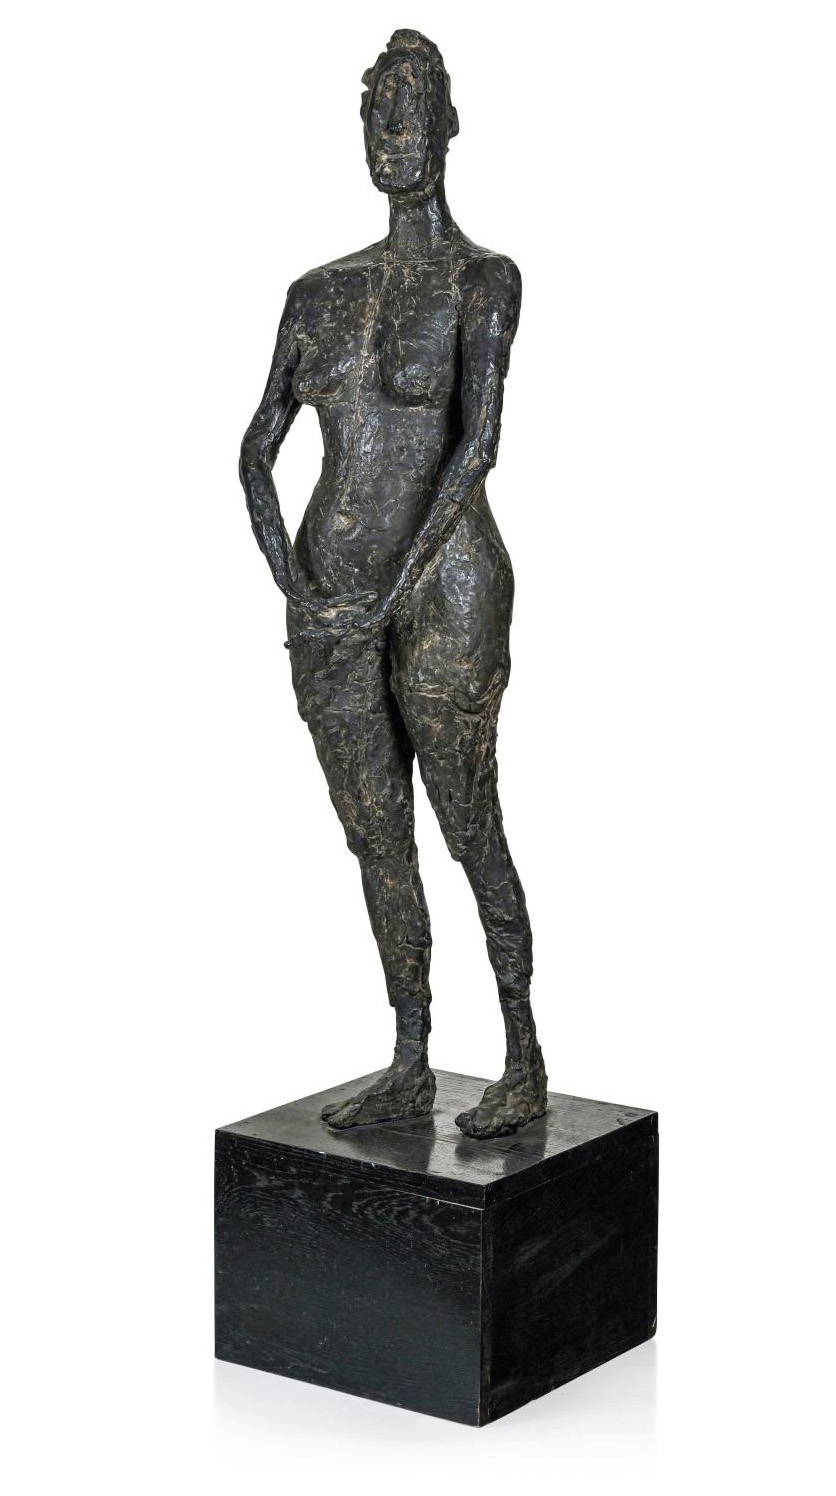 Germaine Richier (1902-1959), La Vierge folle (The Foolish Virgin), 1946, bronze with brown patina, 4/6, cast by Susse, 133 x 38 x 20.5 cm